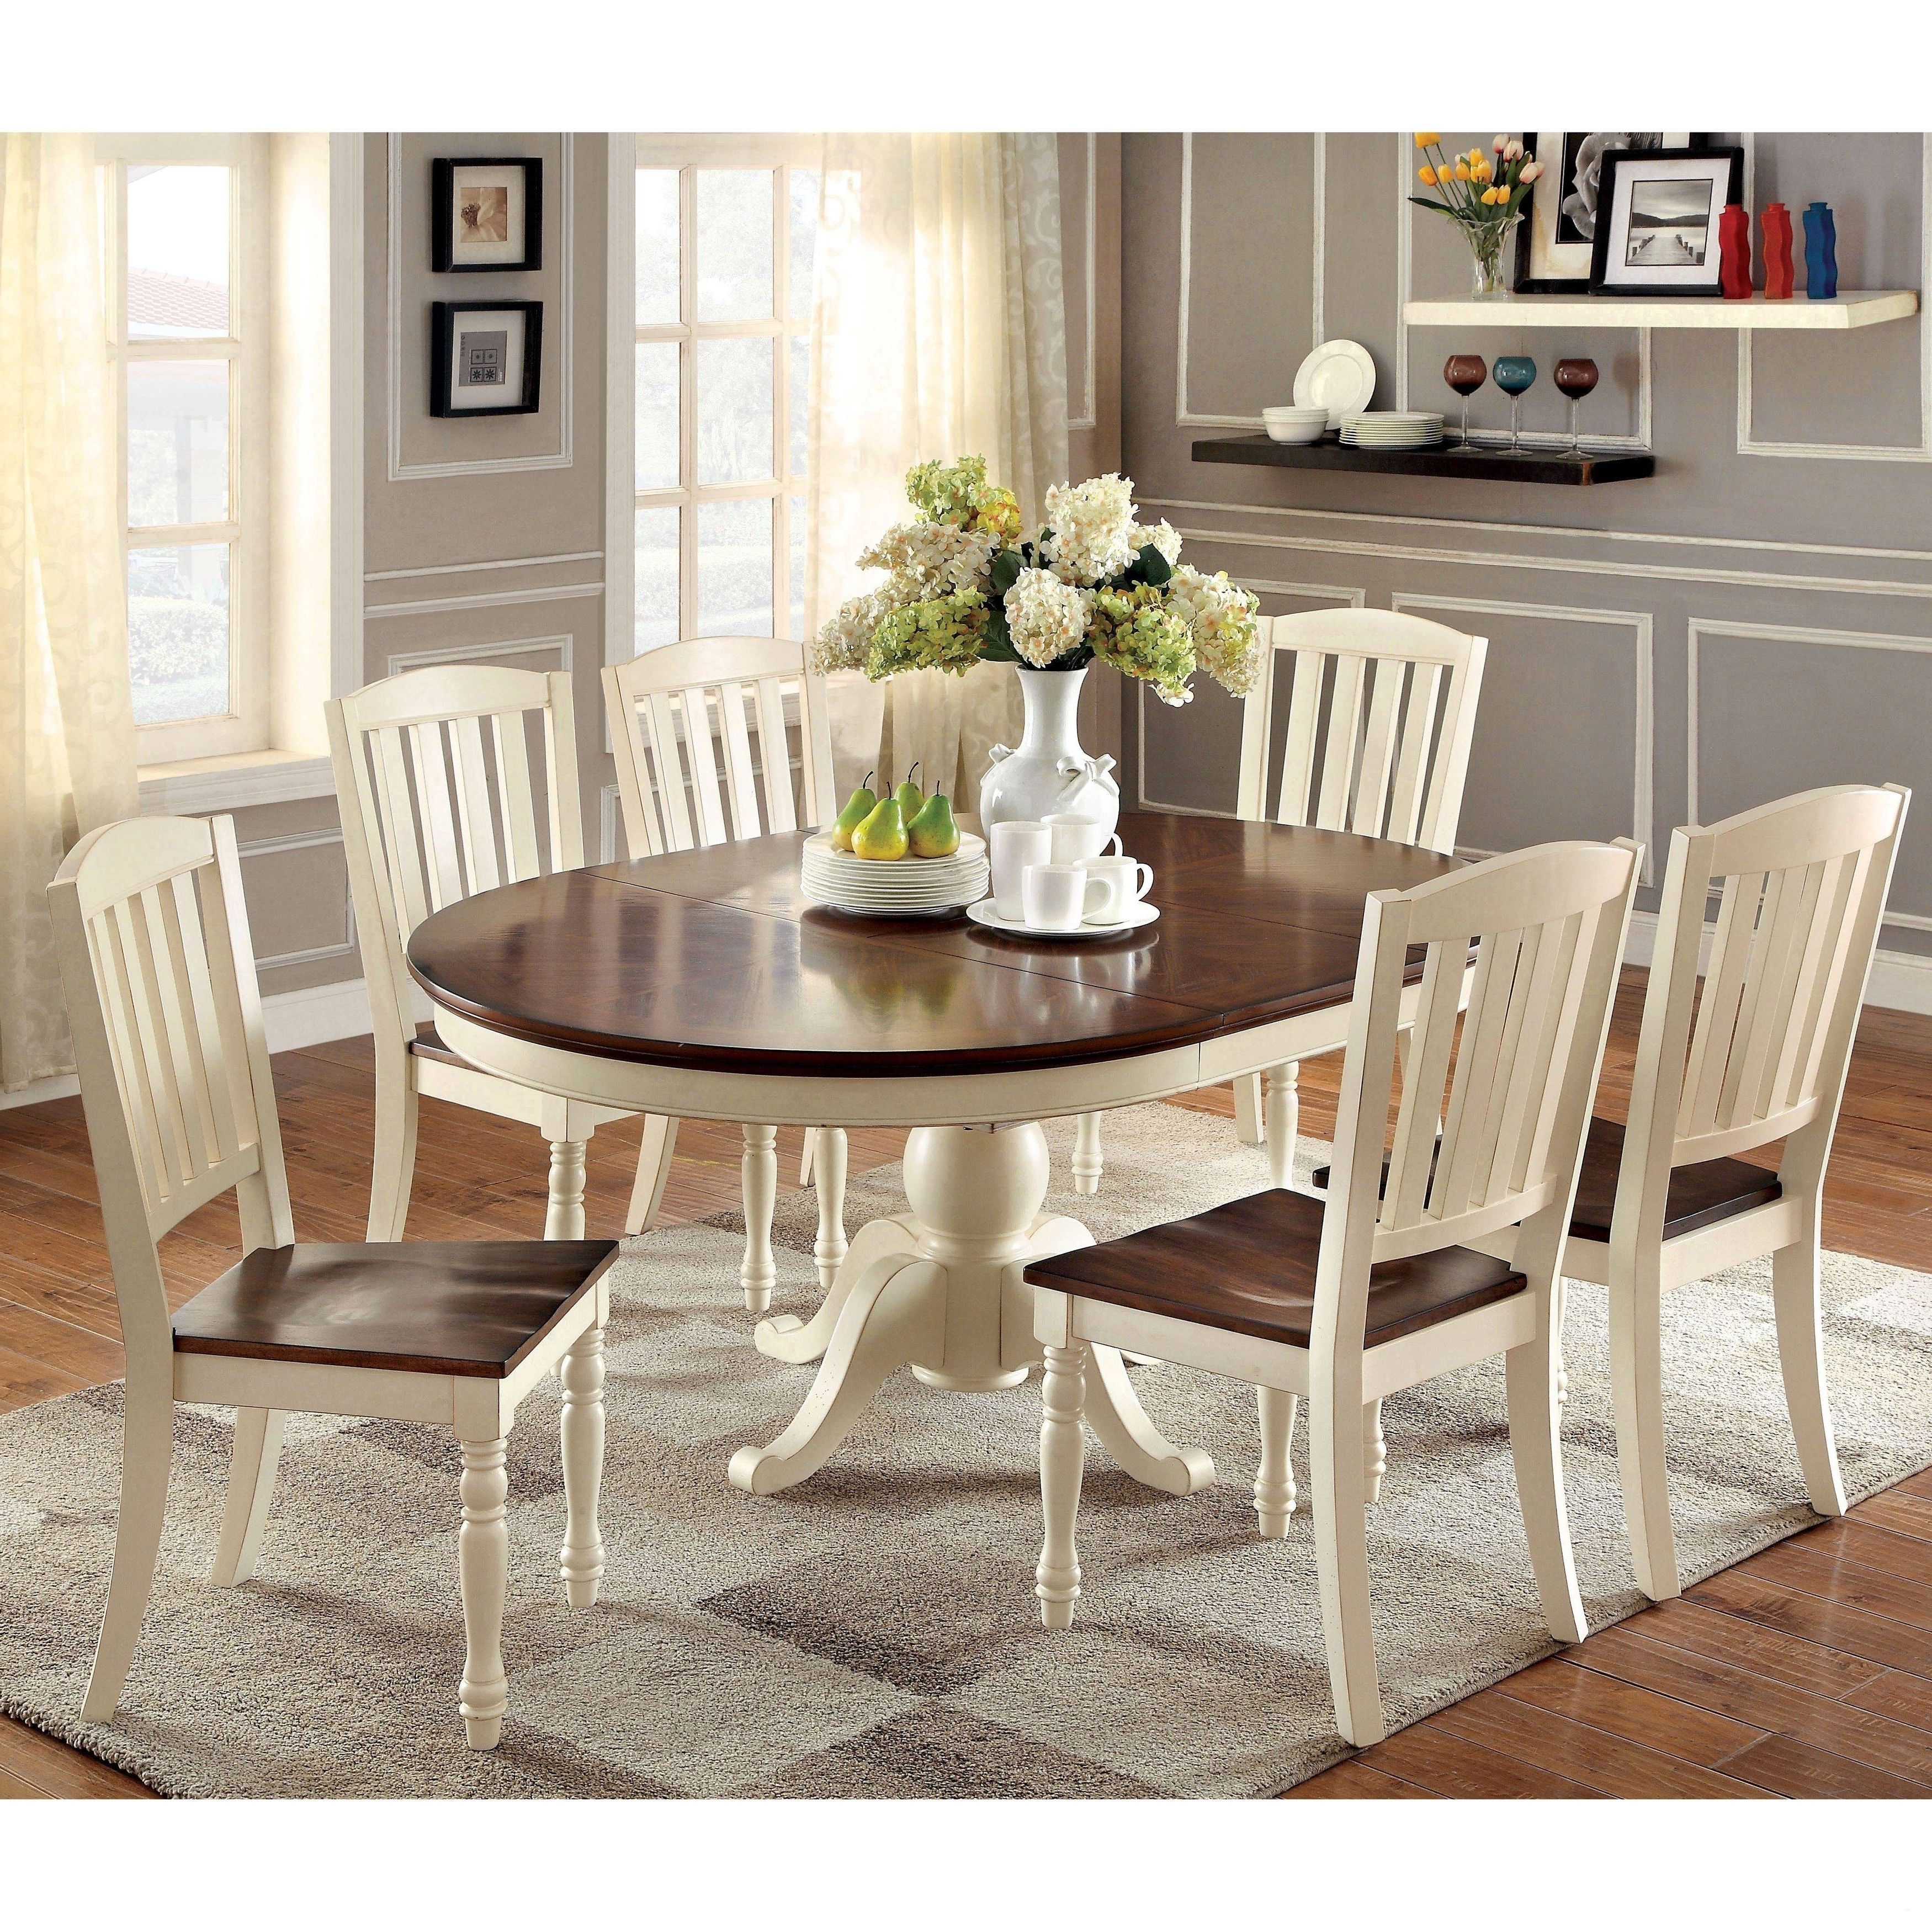 Pedestal Extending Dining Table Luxury Round Extension Dining Table Pertaining To 2018 Round Extending Dining Tables Sets (View 14 of 25)